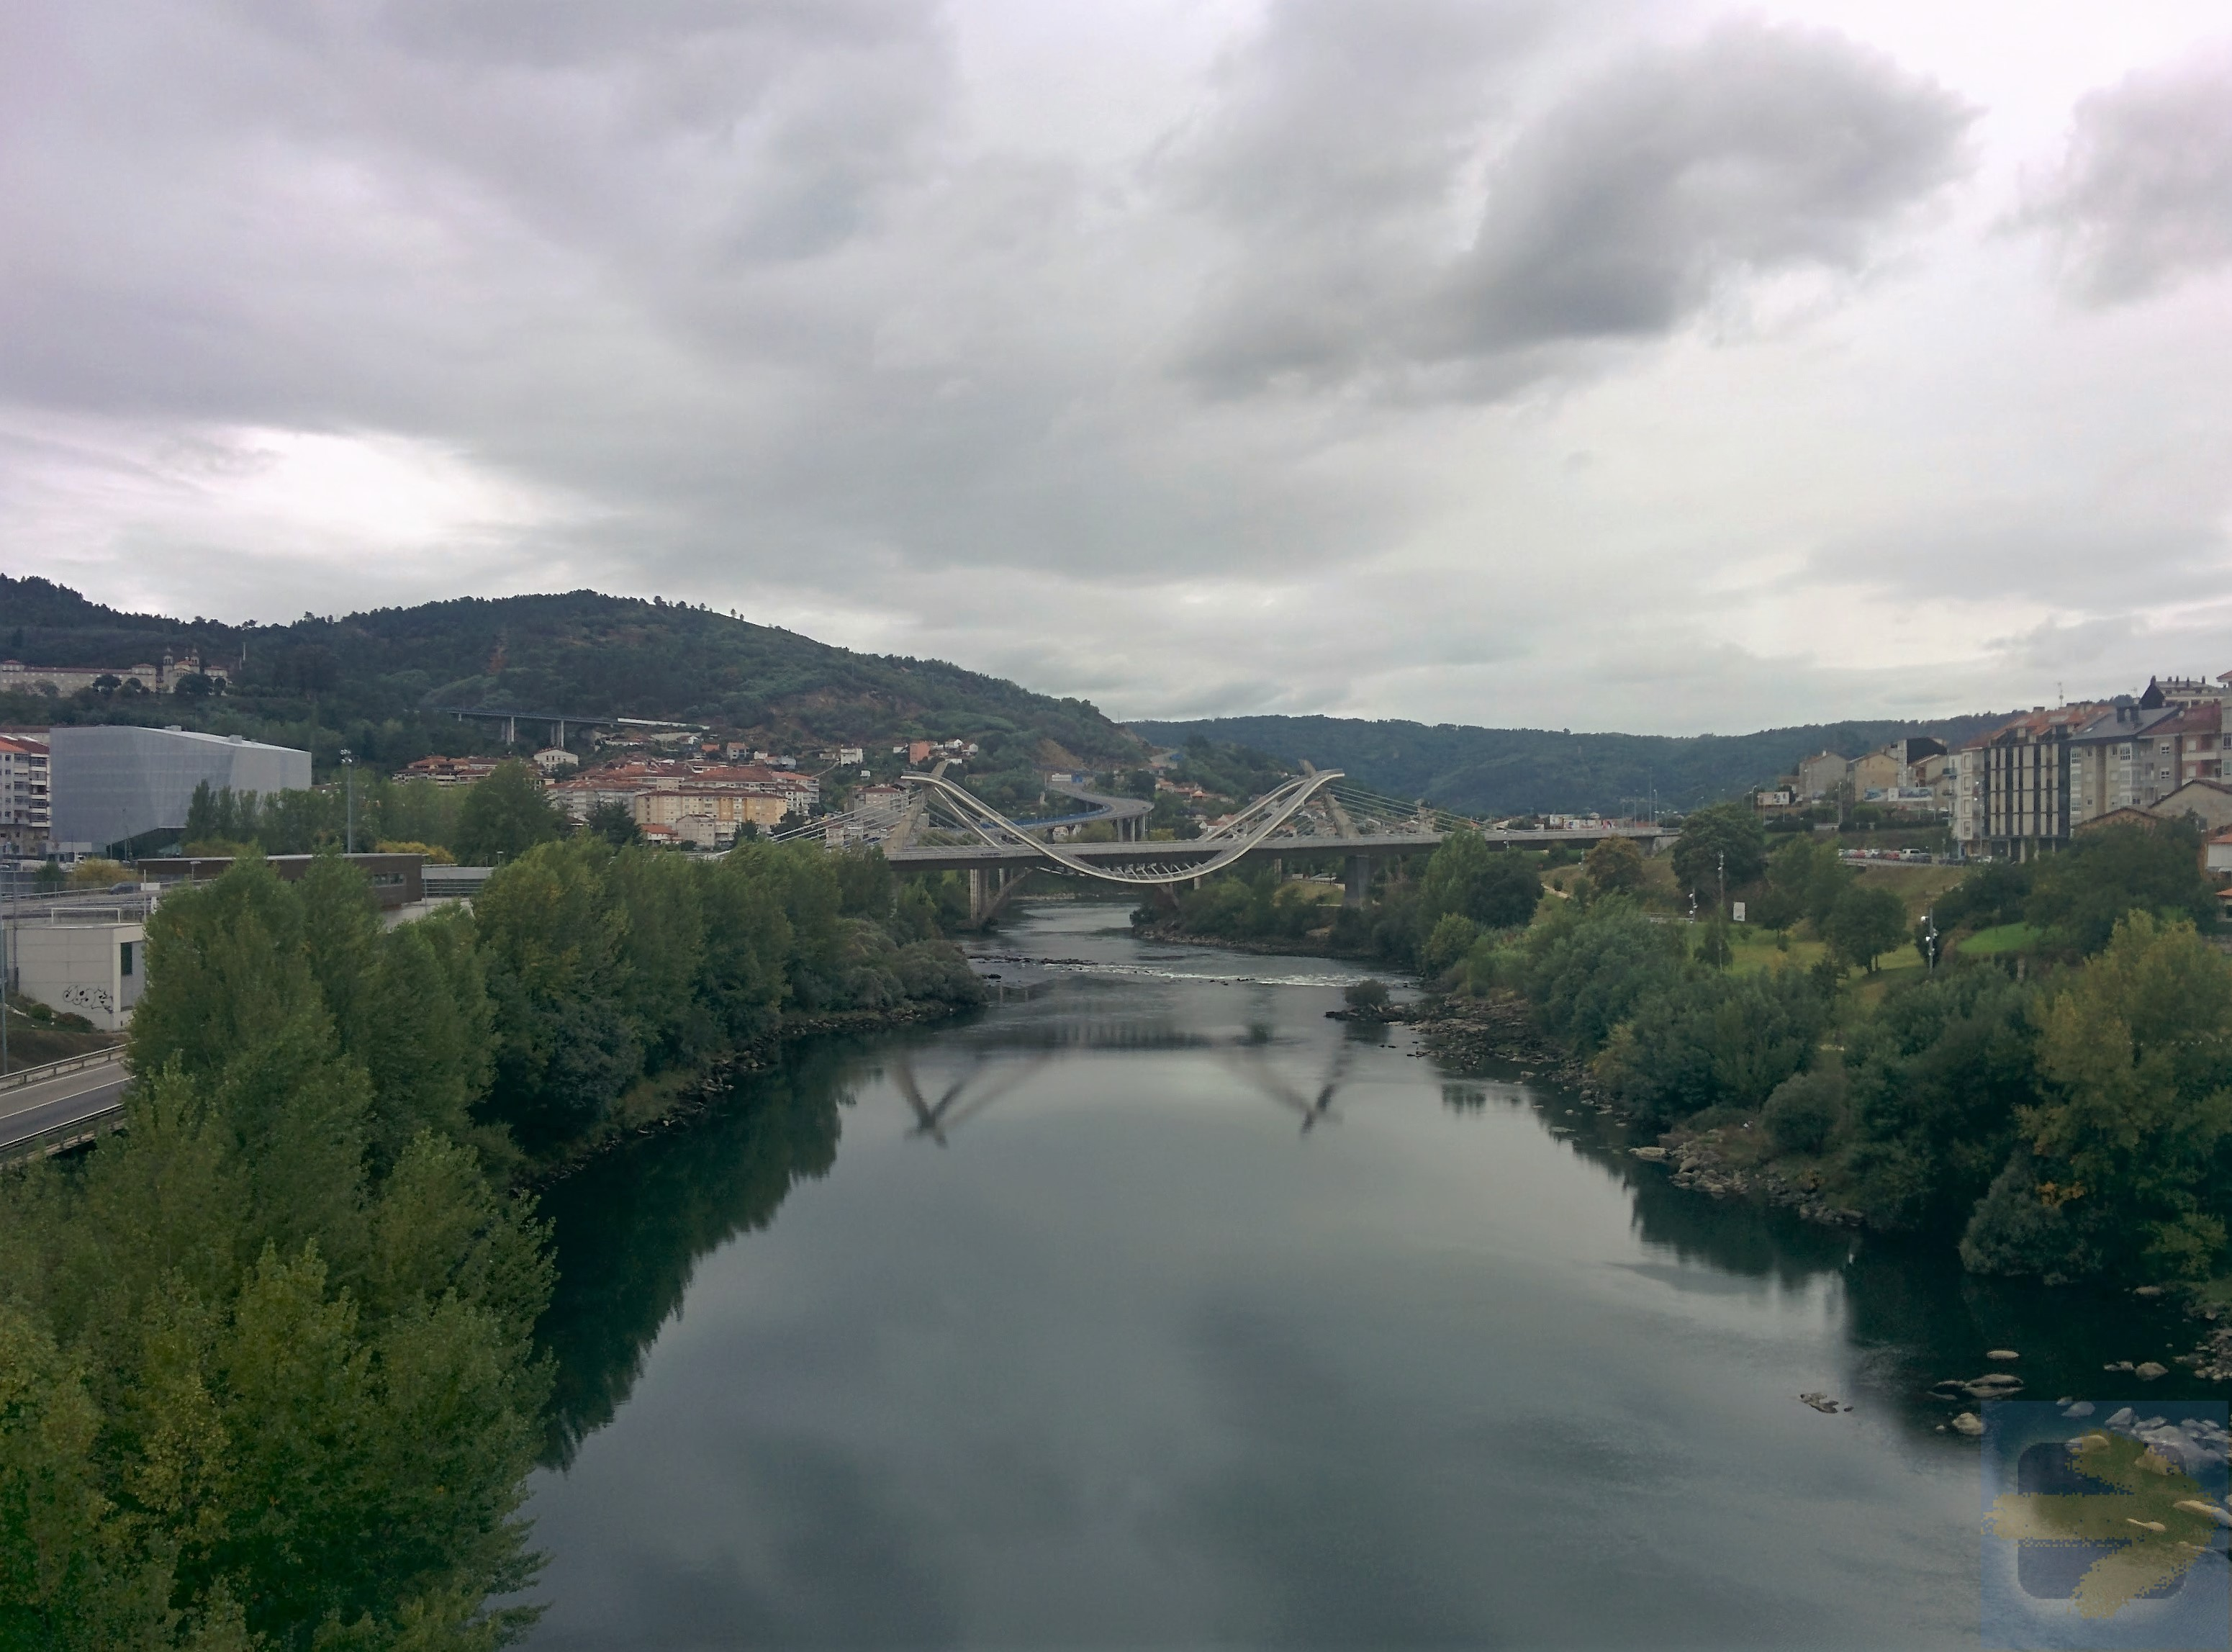 River Miño in Ourense